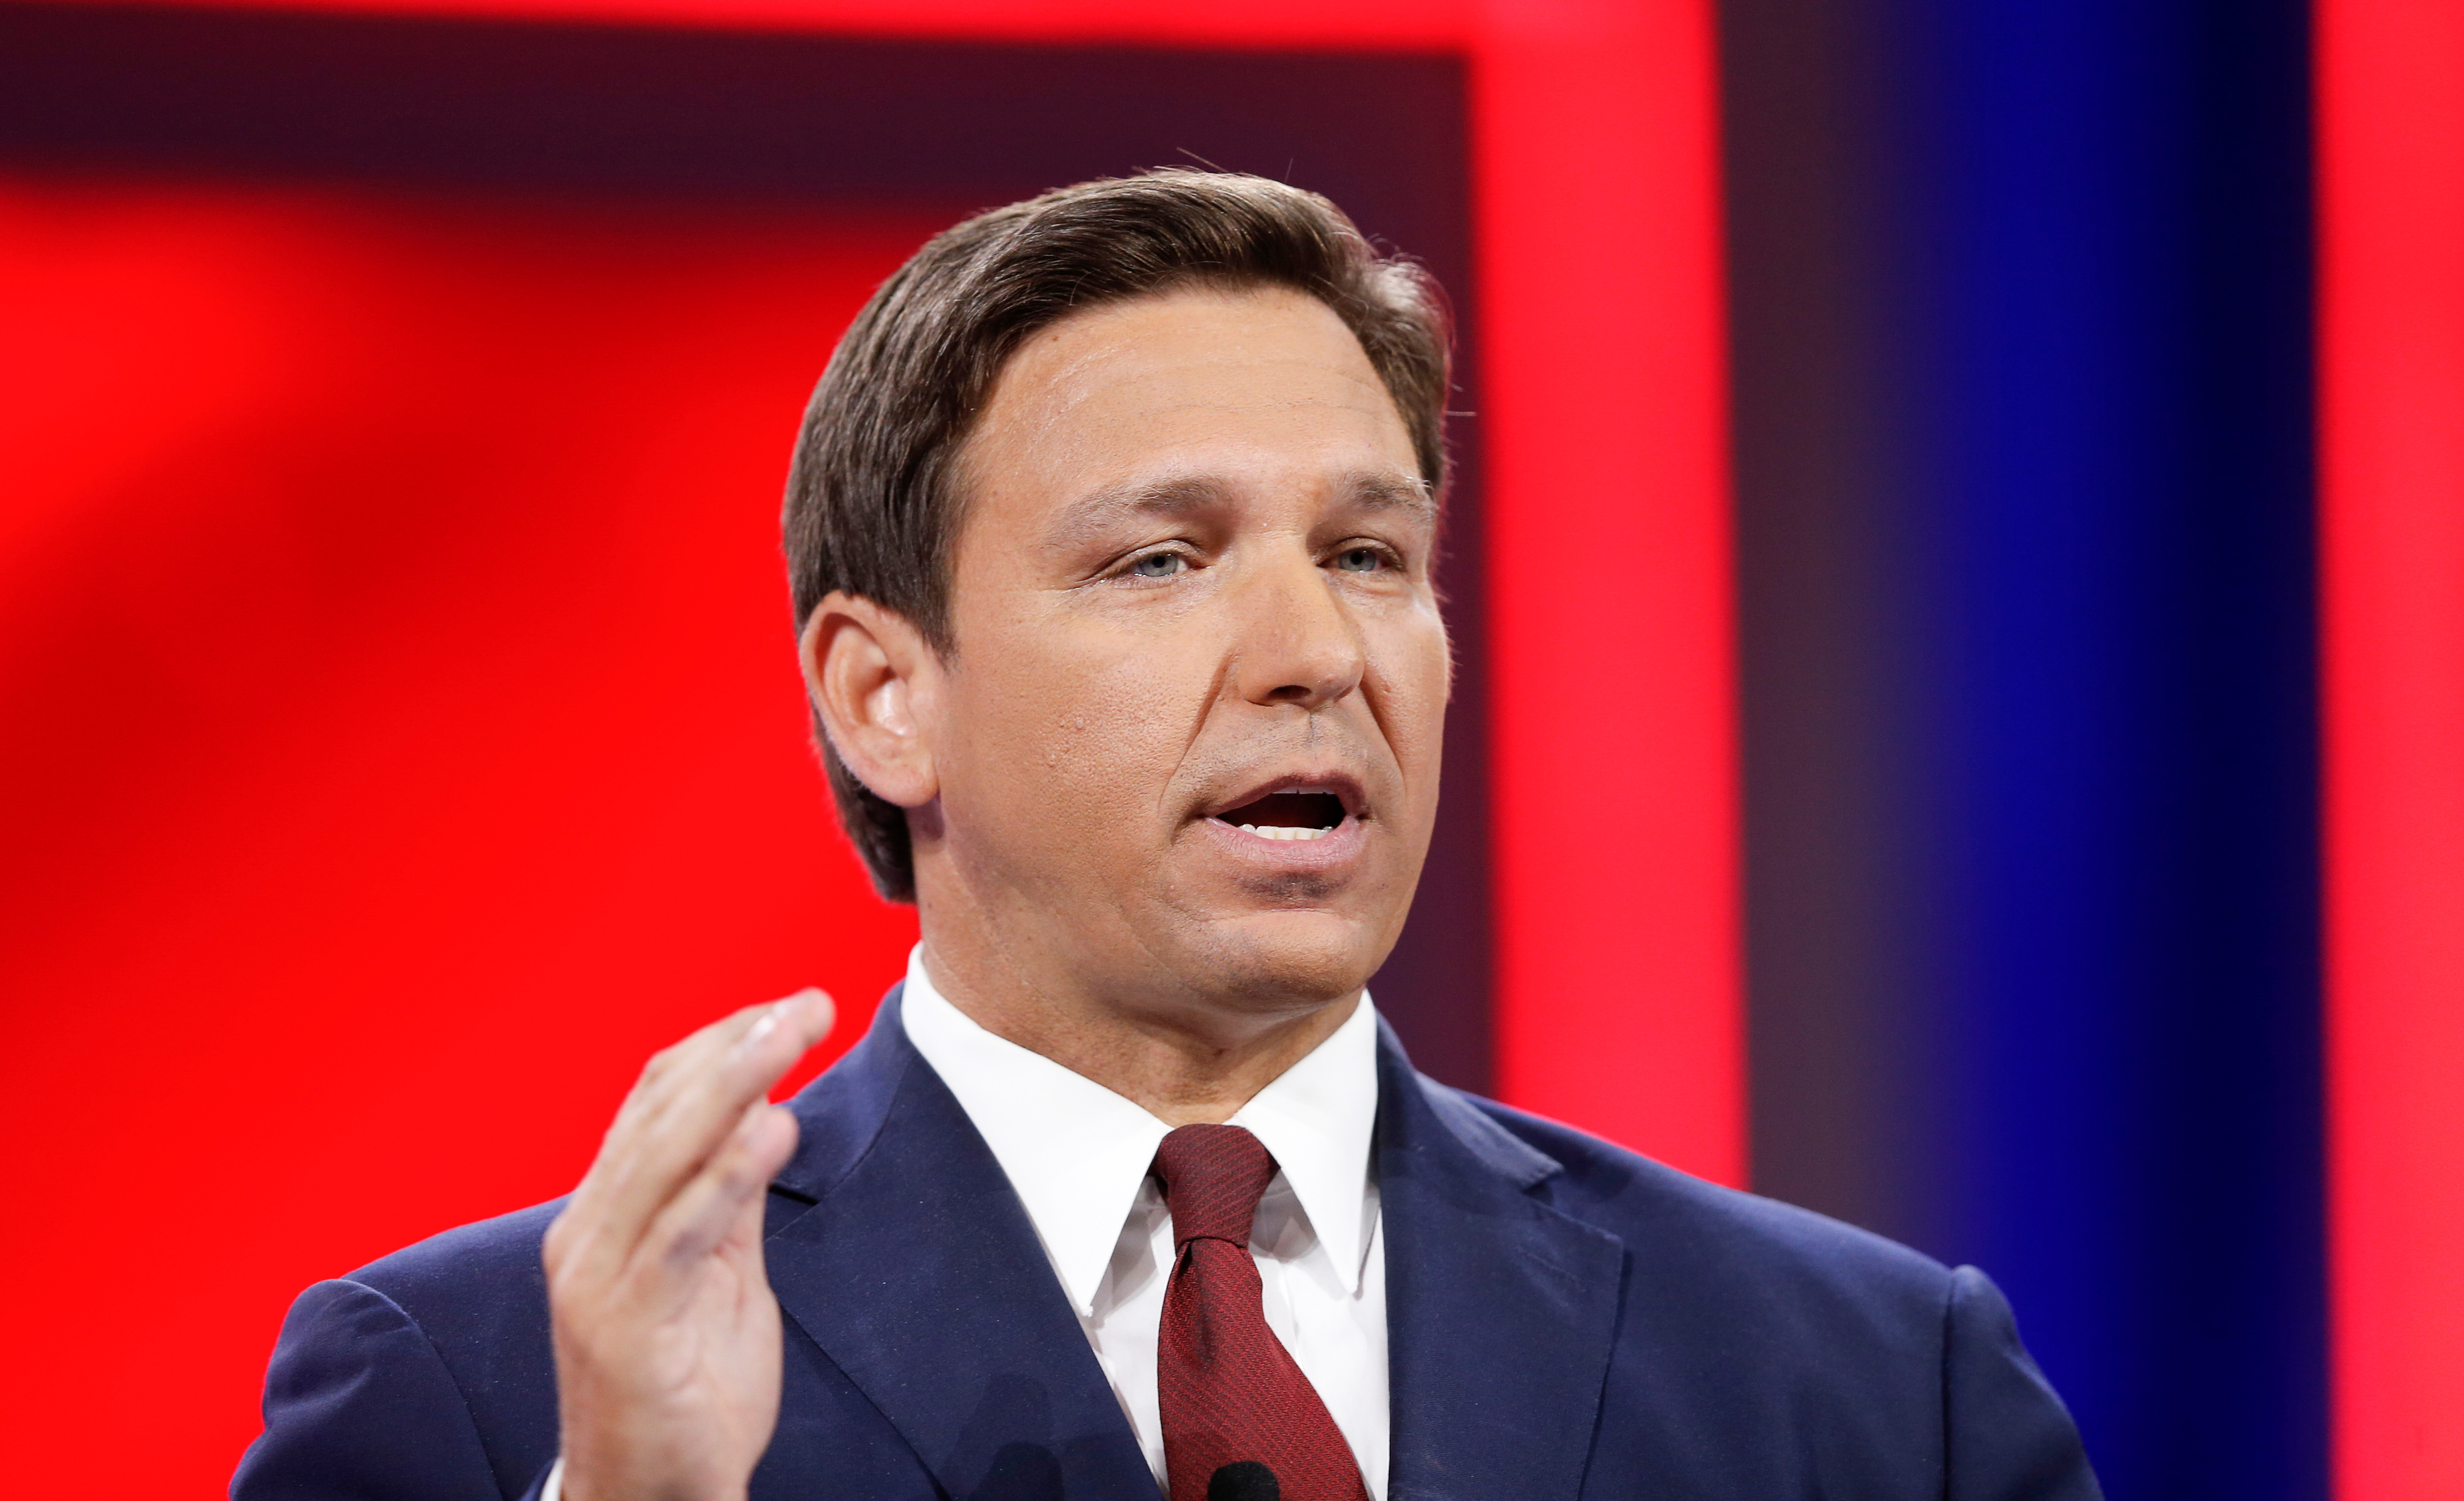 Florida Gov. Ron DeSantis speaks during the welcome segment of the Conservative Political Action Conference (CPAC) in Orlando, Florida, U.S. February 26, 2021. REUTERS/Joe Skipper